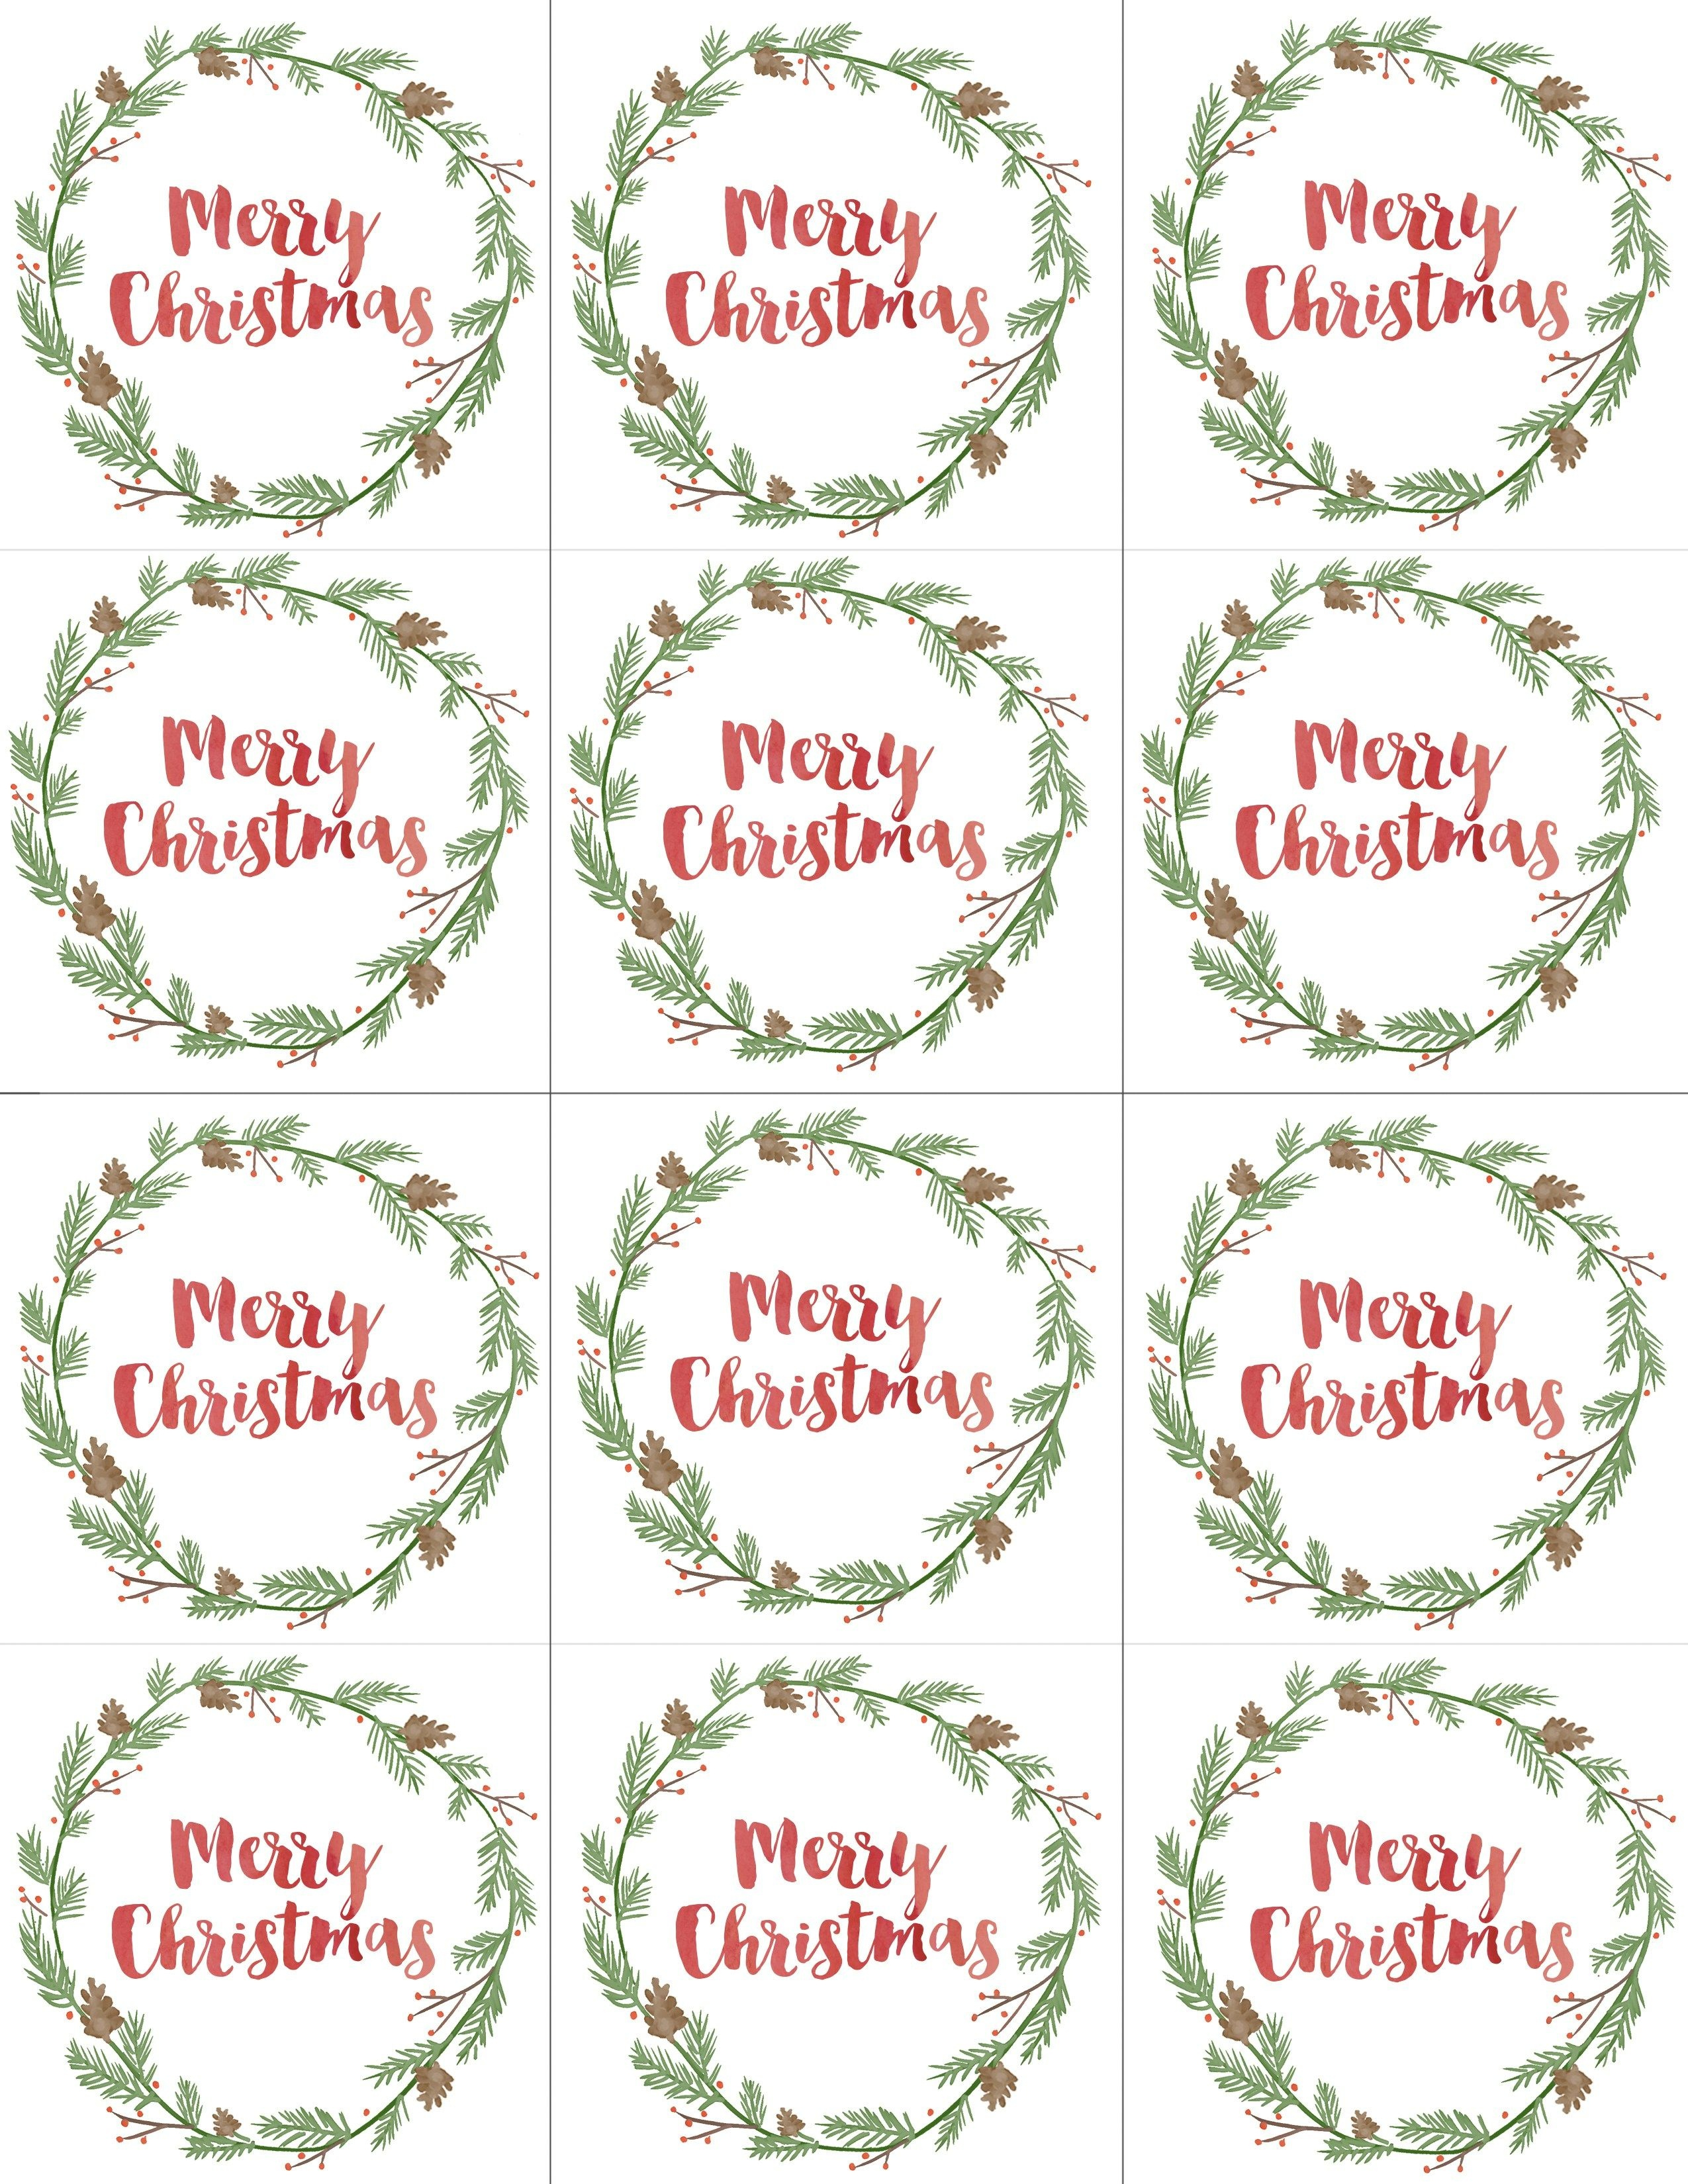 Hand Painted Gift Tags Free Printable | Christmas | Christmas Gift - Free Printable Holiday Gift Labels